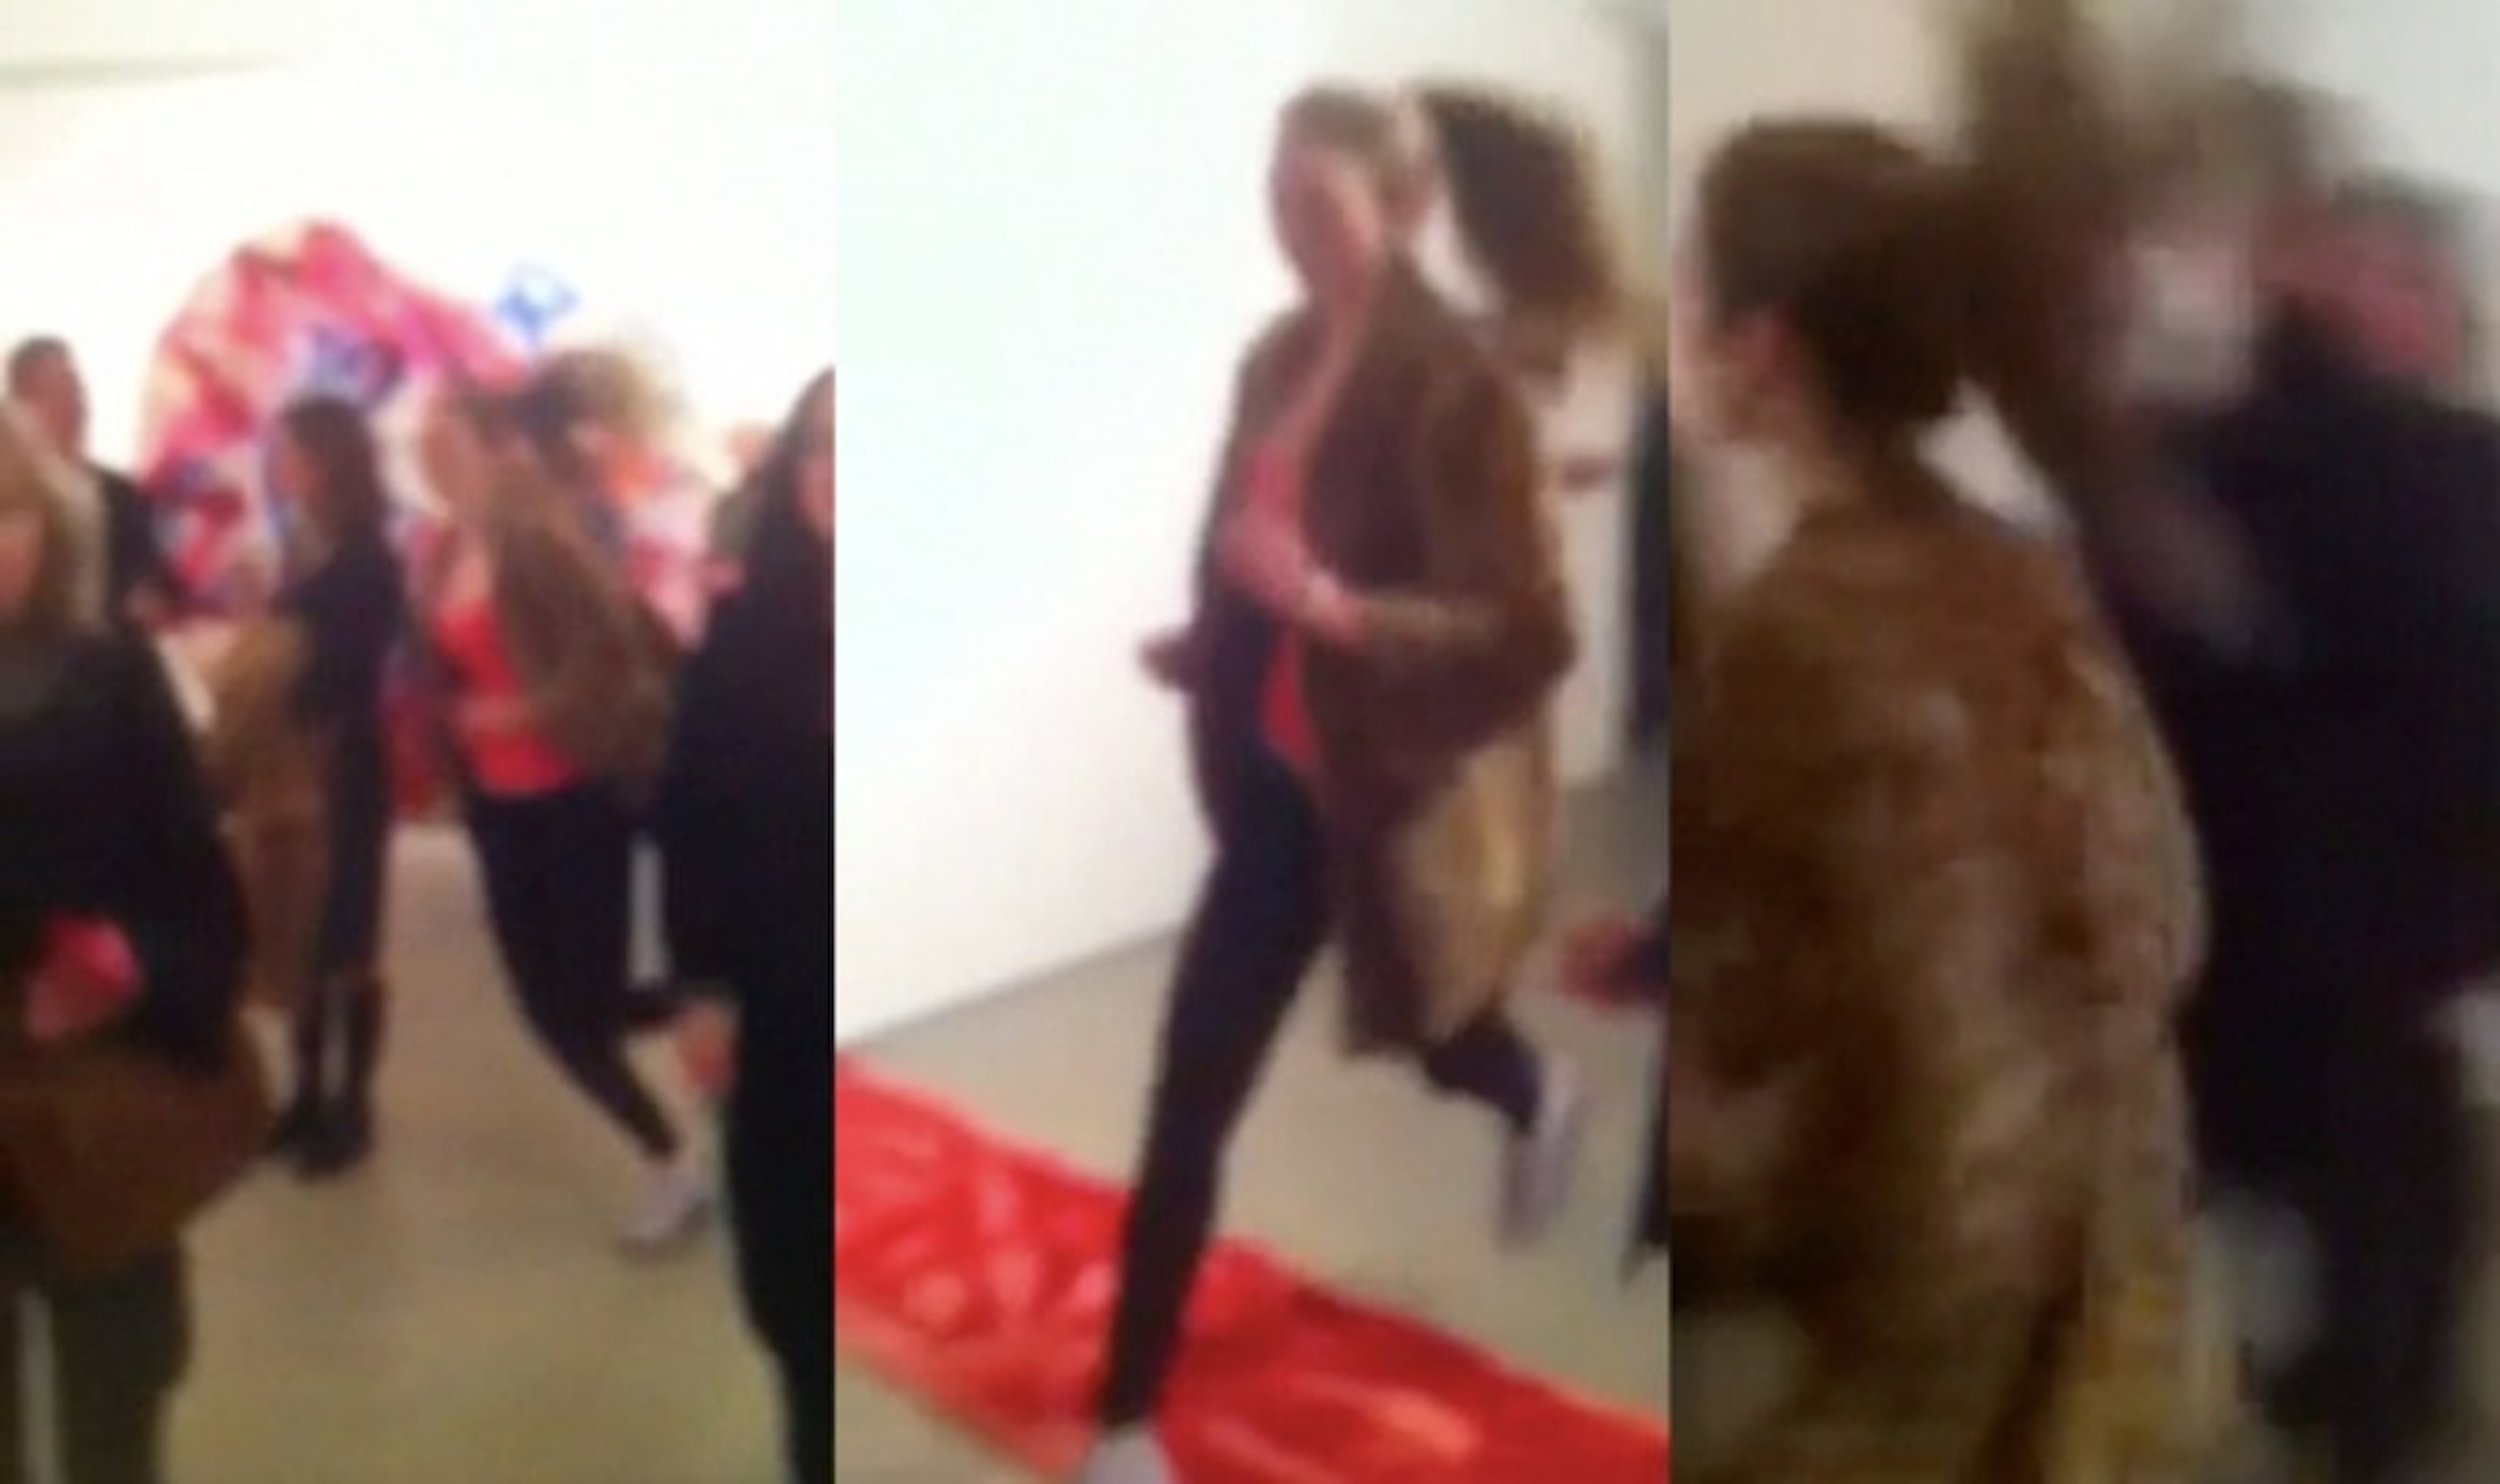 Opening Night performance of  Woman Running with Ocelot Fur, 2 014  Wherein a personal trainer, as a quick mirage, runs through the gallery space providing a temporary compositional element.